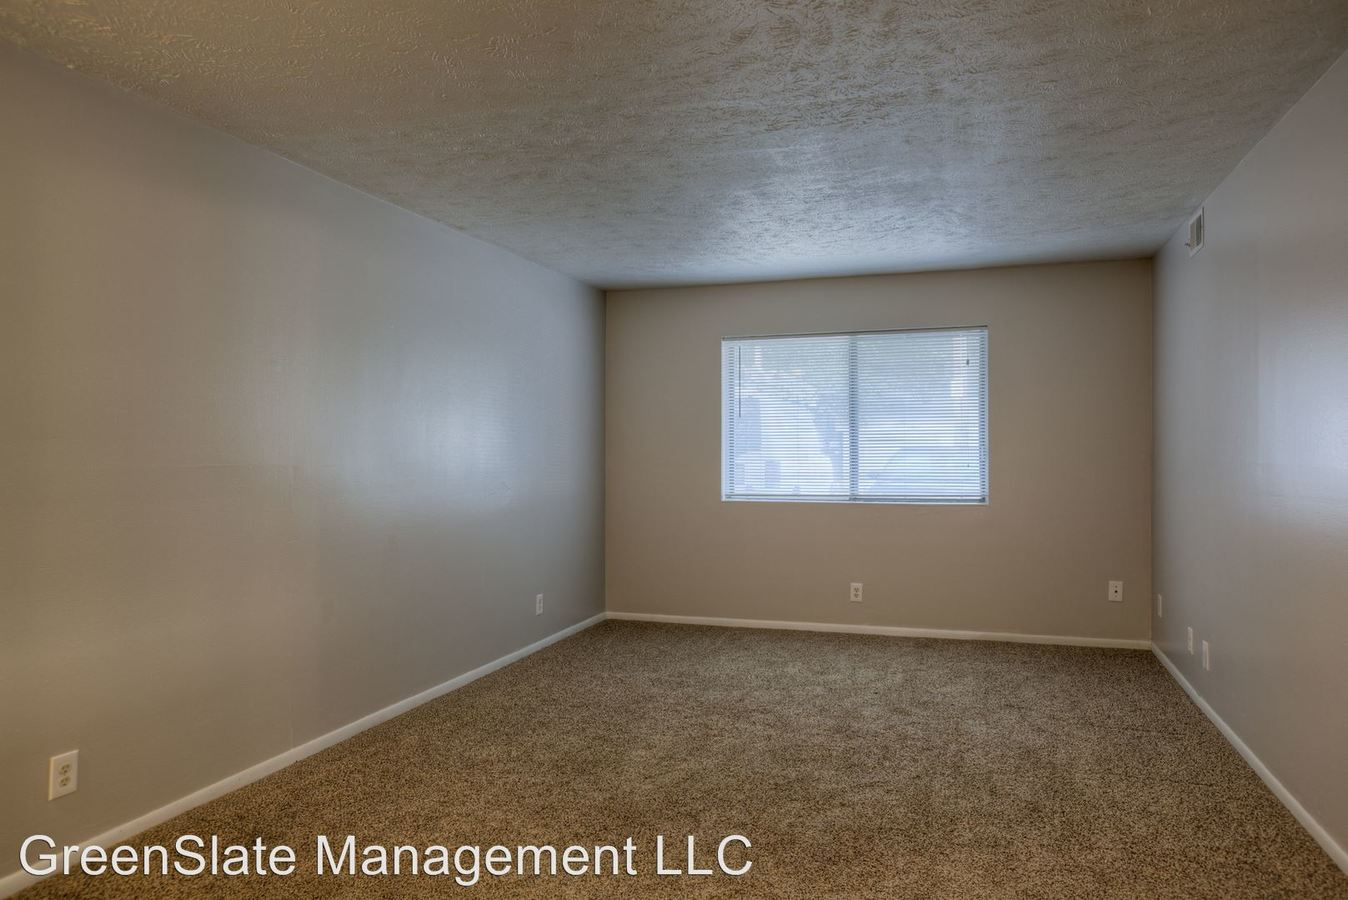 1 Bedroom 1 Bathroom Apartment for rent at 120 / 124 / 128 S 38th Street in Omaha, NE